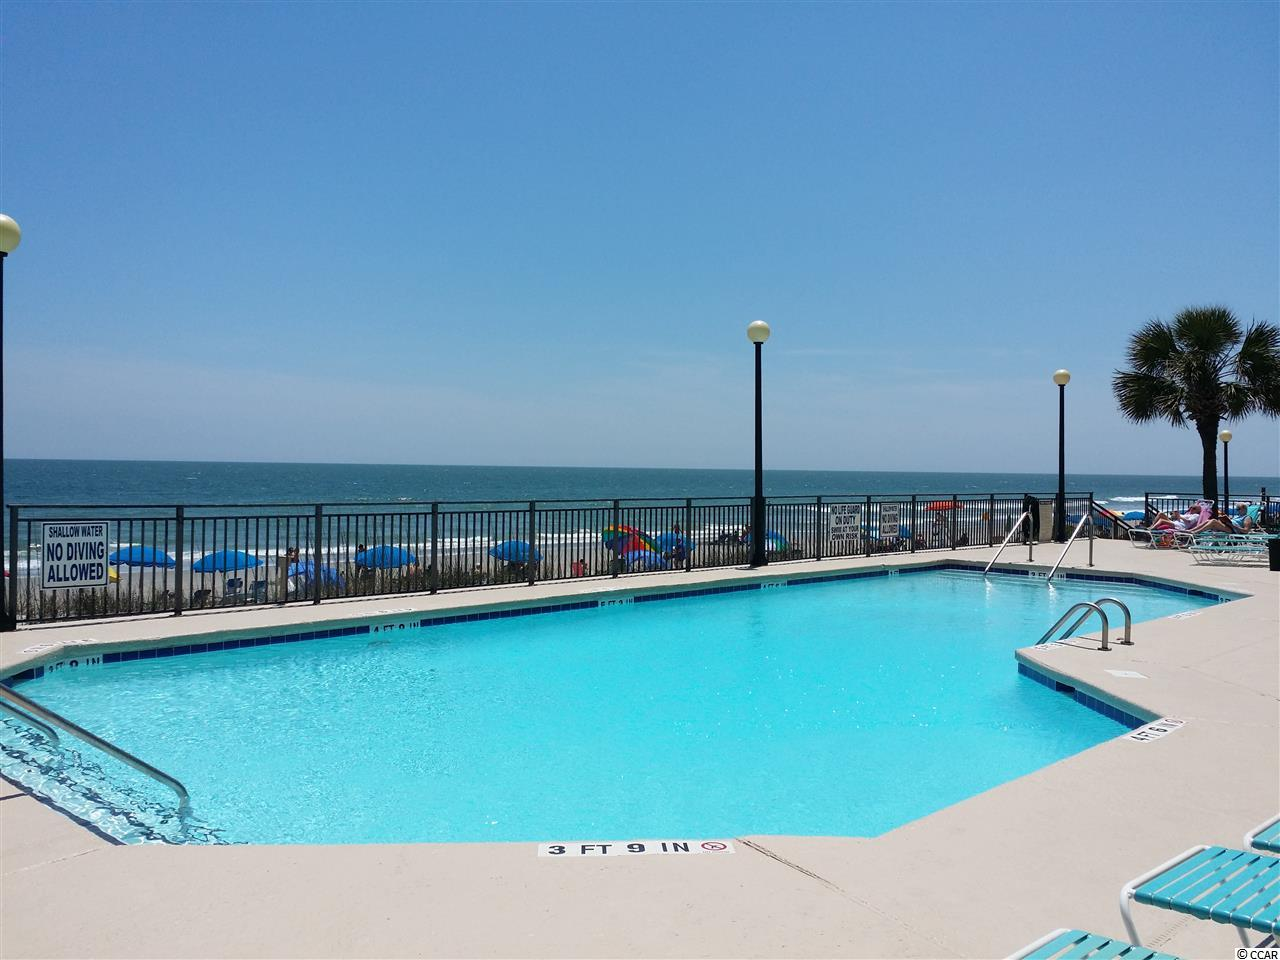 Condo Sold At Surfmaster I In Garden City Beach South Carolina Unit Listing Mls Number 1505874